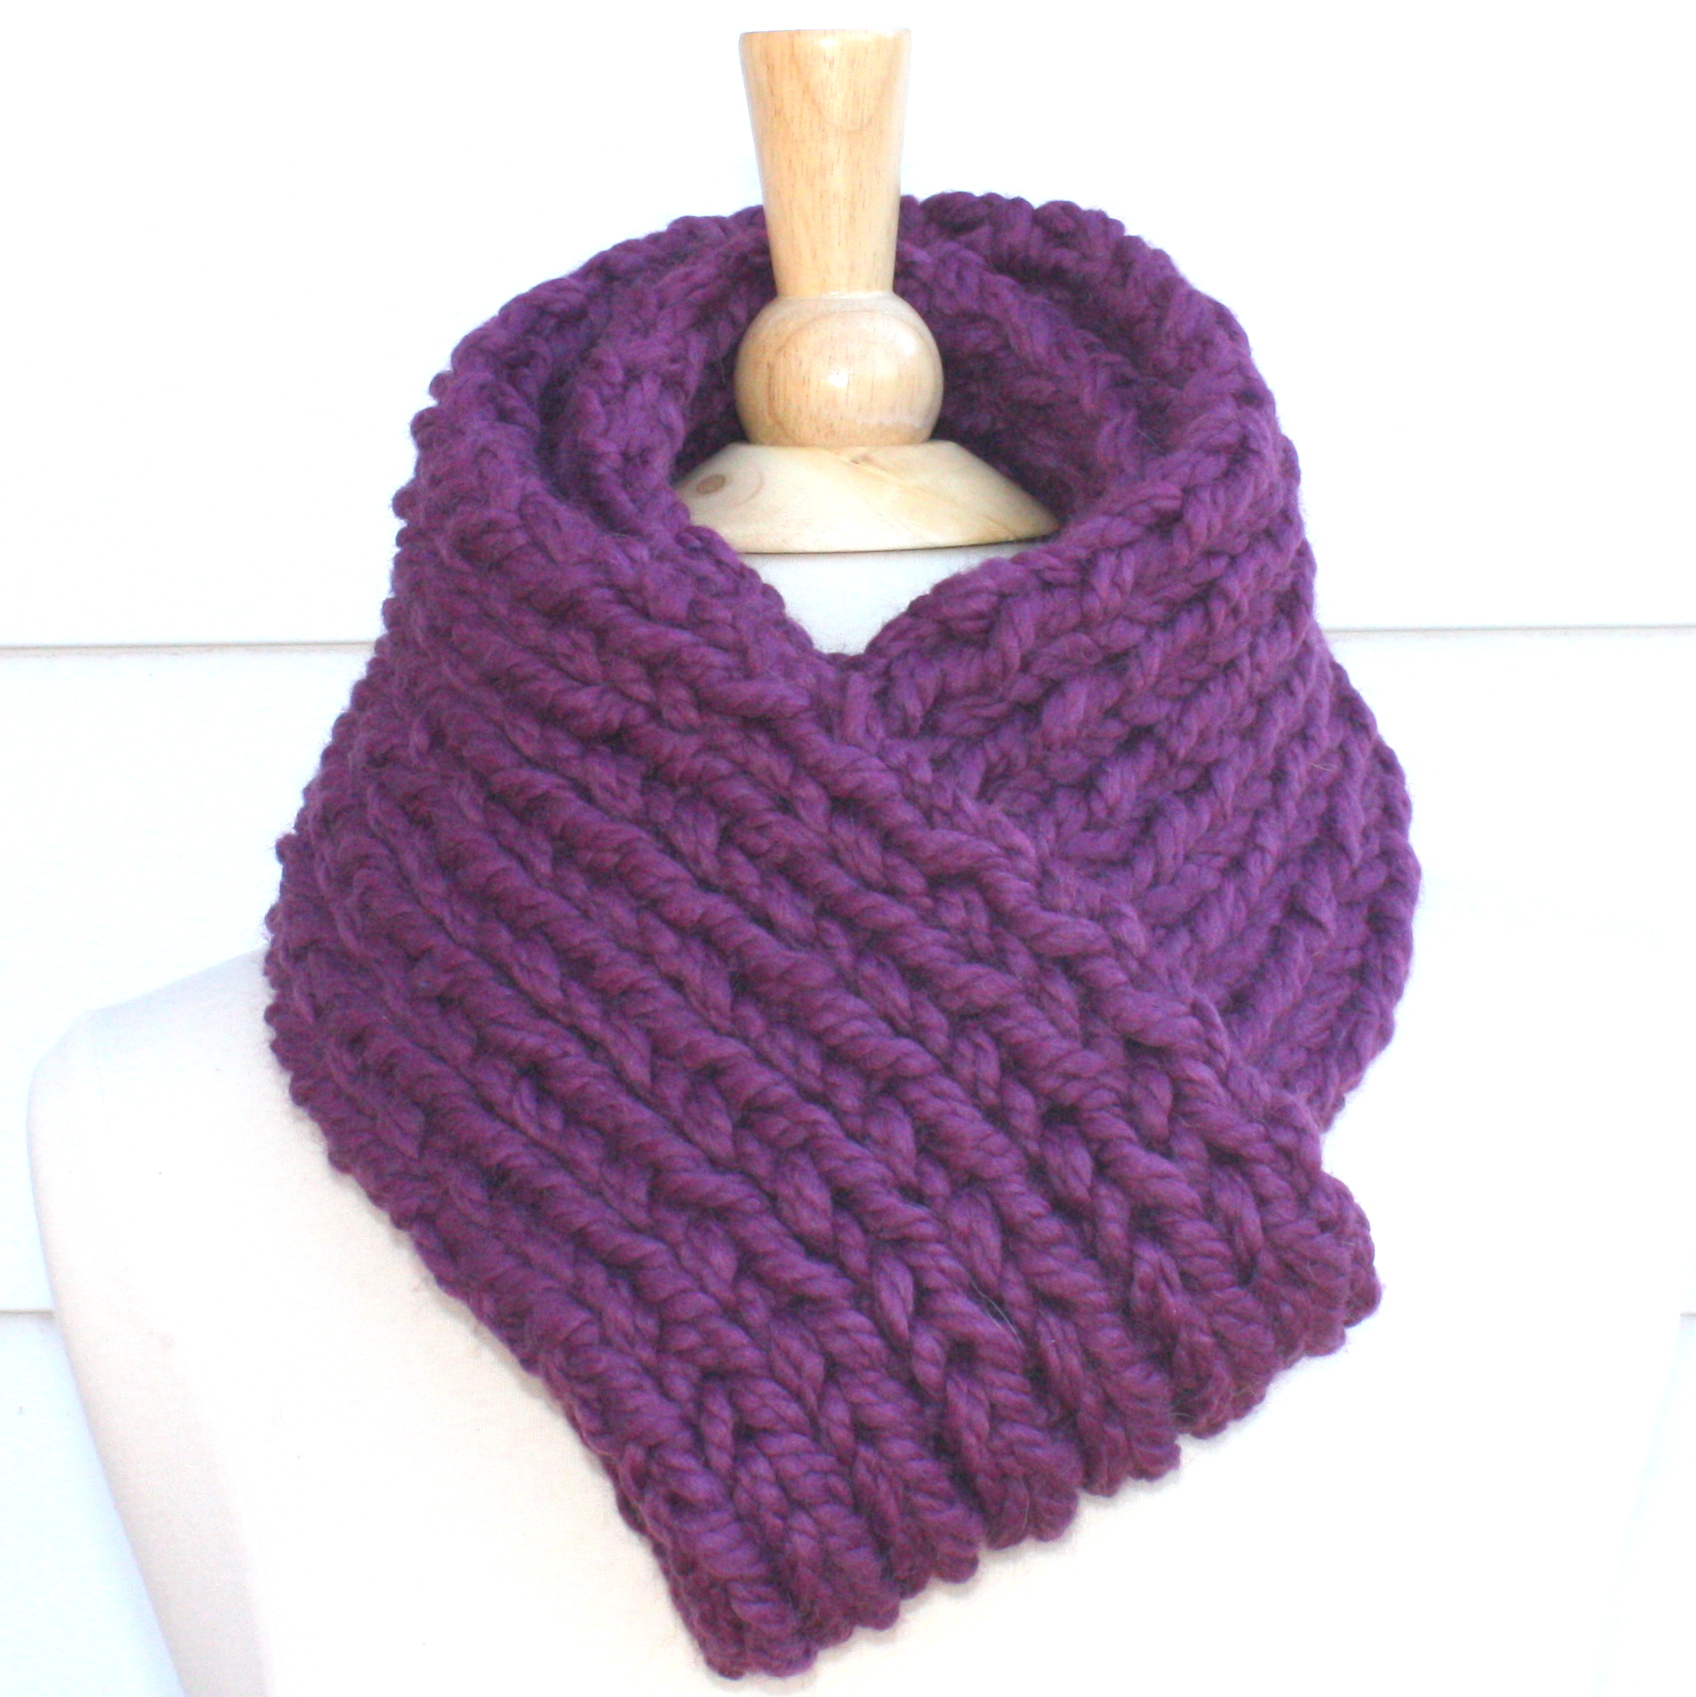 knit scarf soft winter scarf plum purple thick warm